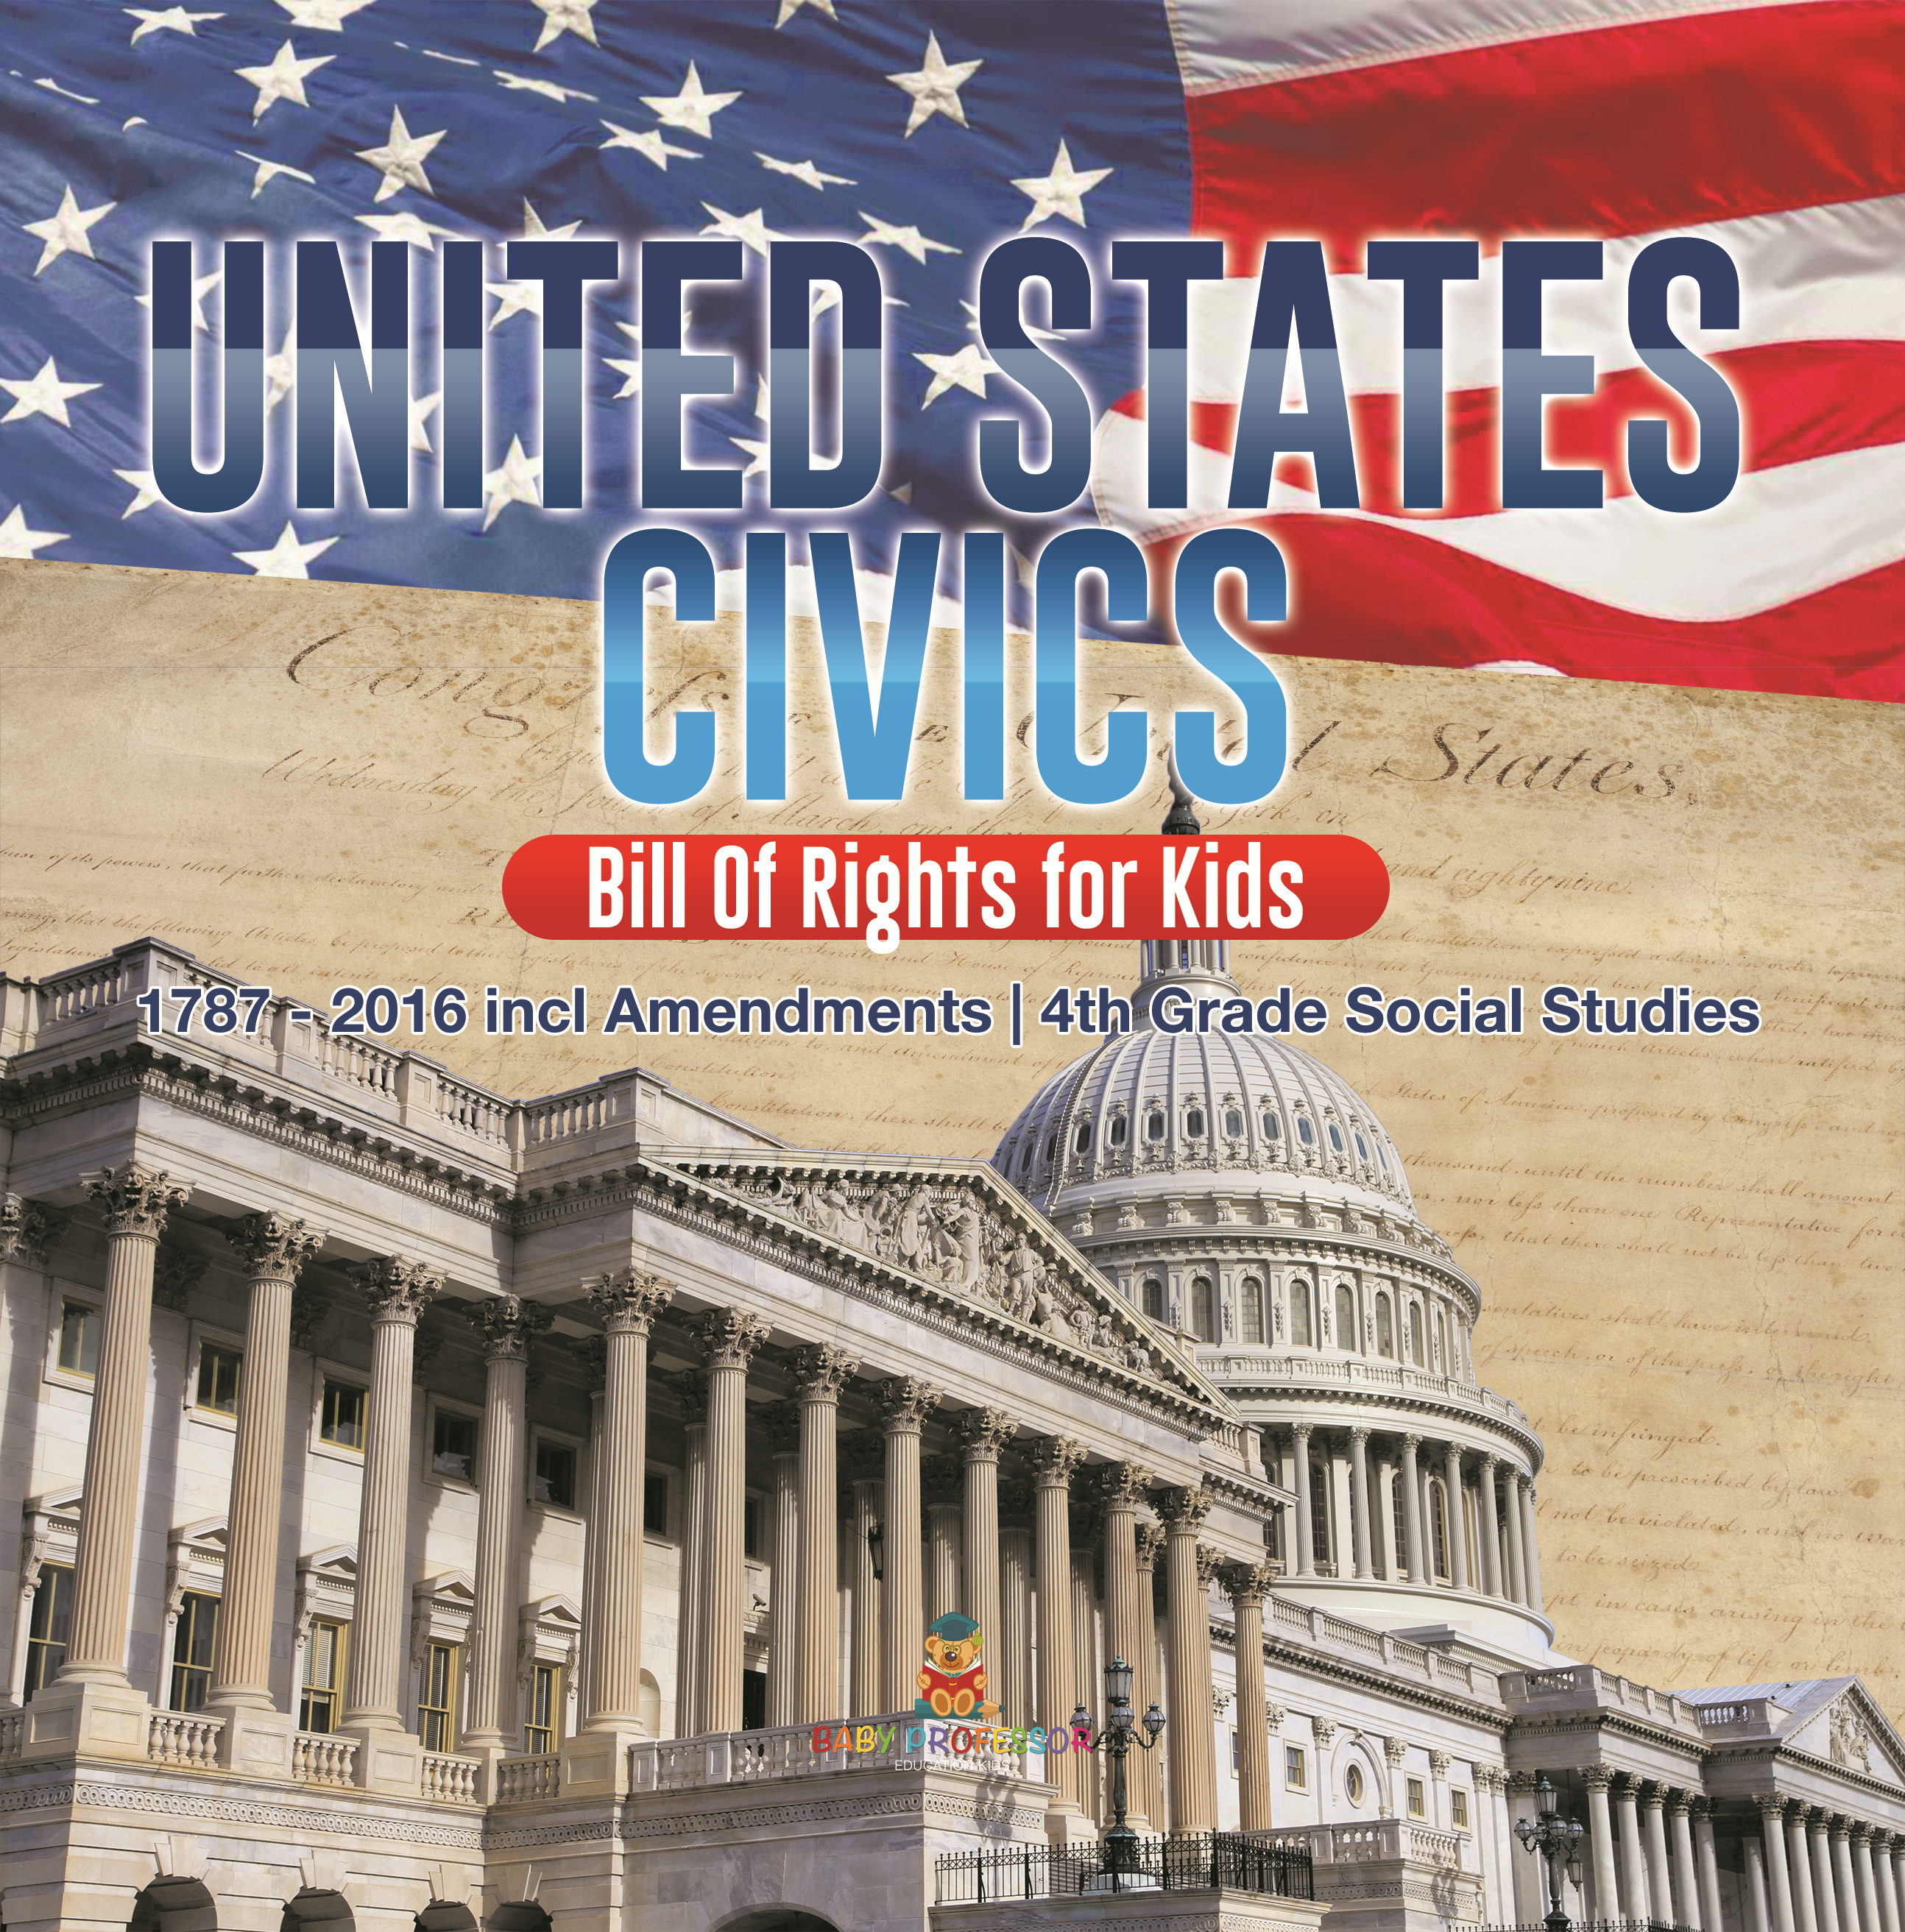 United States Civics - Bill Of Rights for Kids | 1787 - 2016 incl Amendments | 4th Grade Social Studies